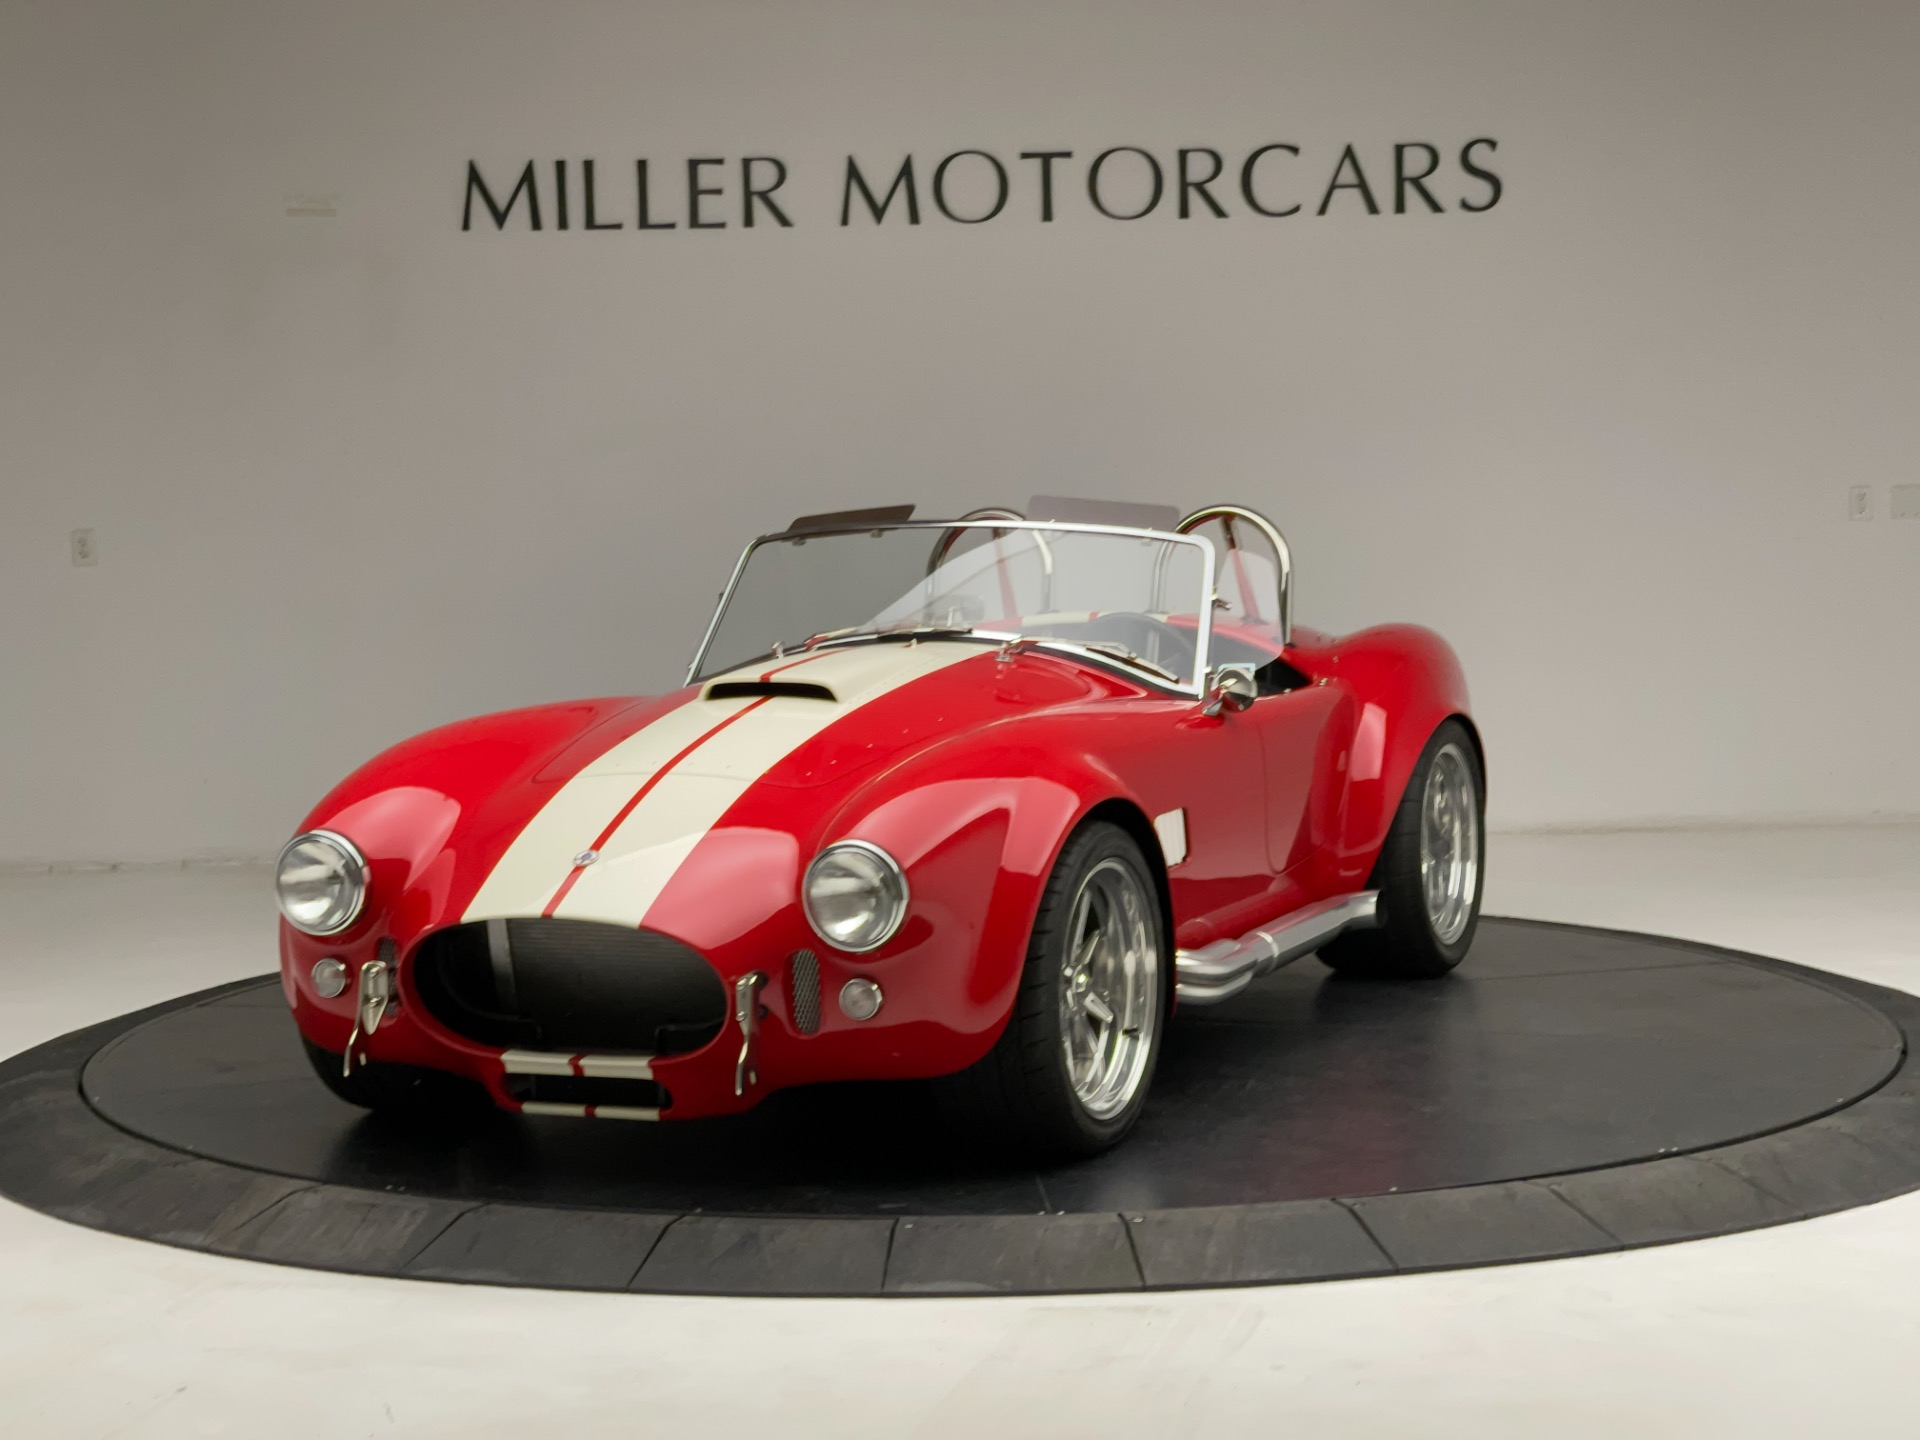 Used 2020 Shelby Cobra Superformance for sale $89,900 at Bentley Greenwich in Greenwich CT 06830 1